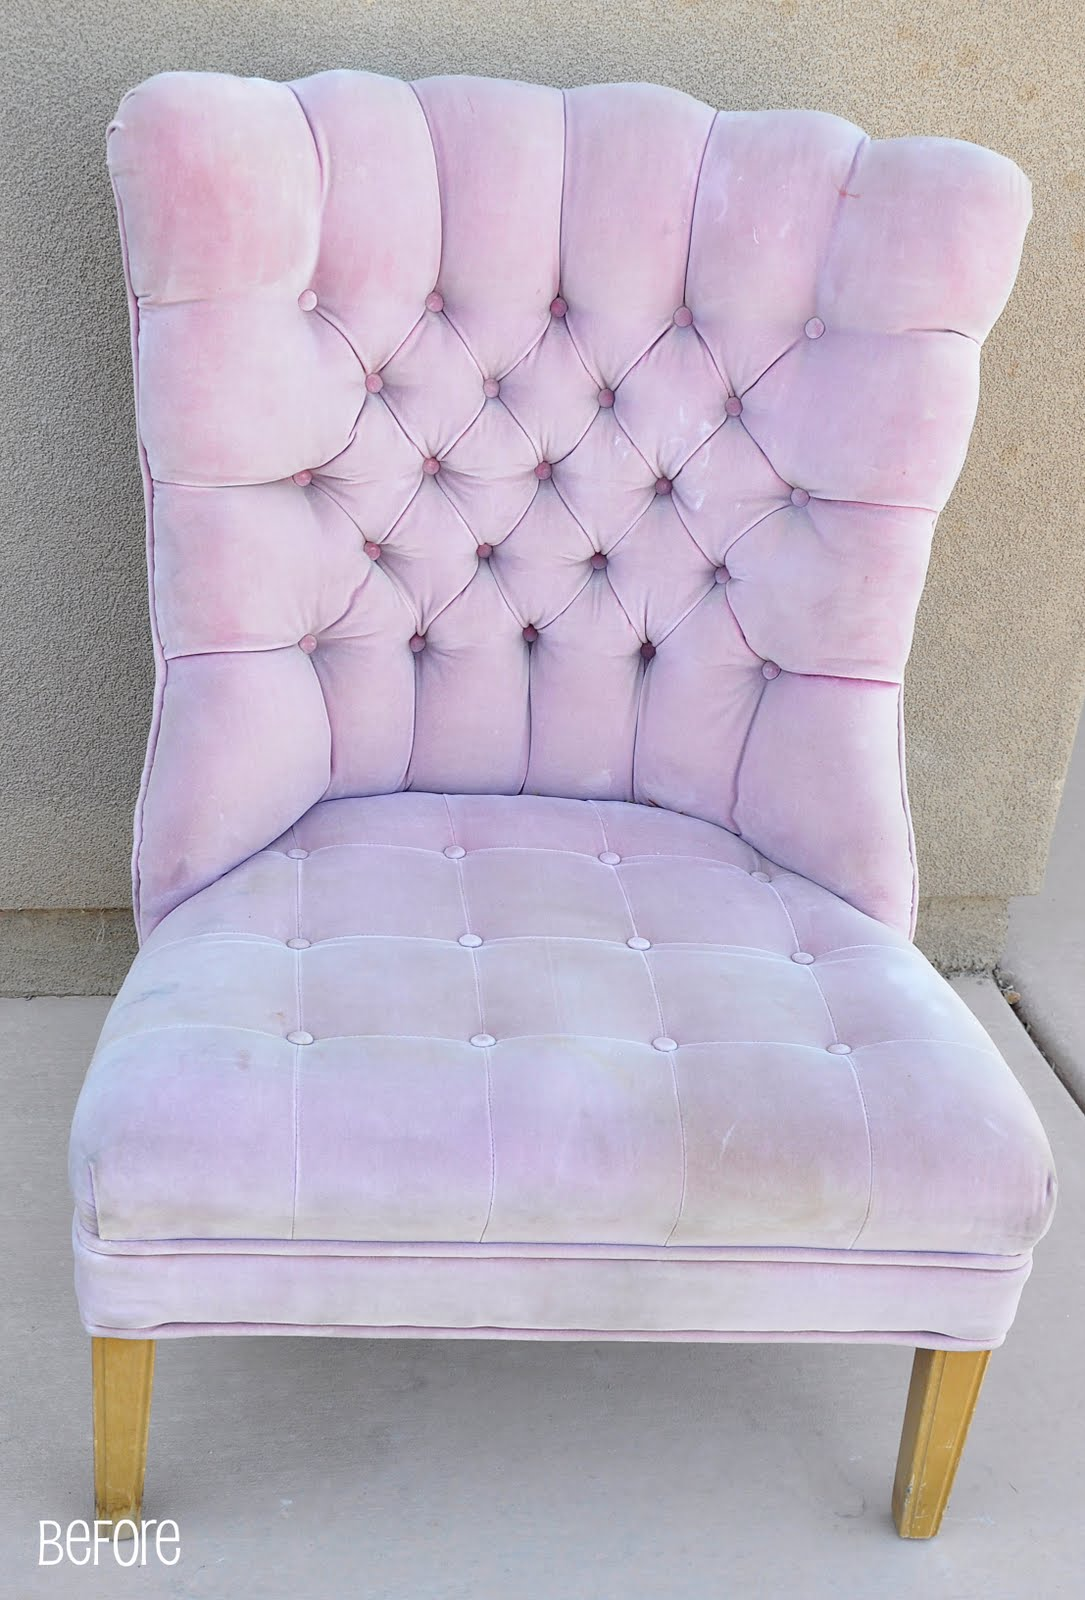 Reupholstering of pink chair complete!